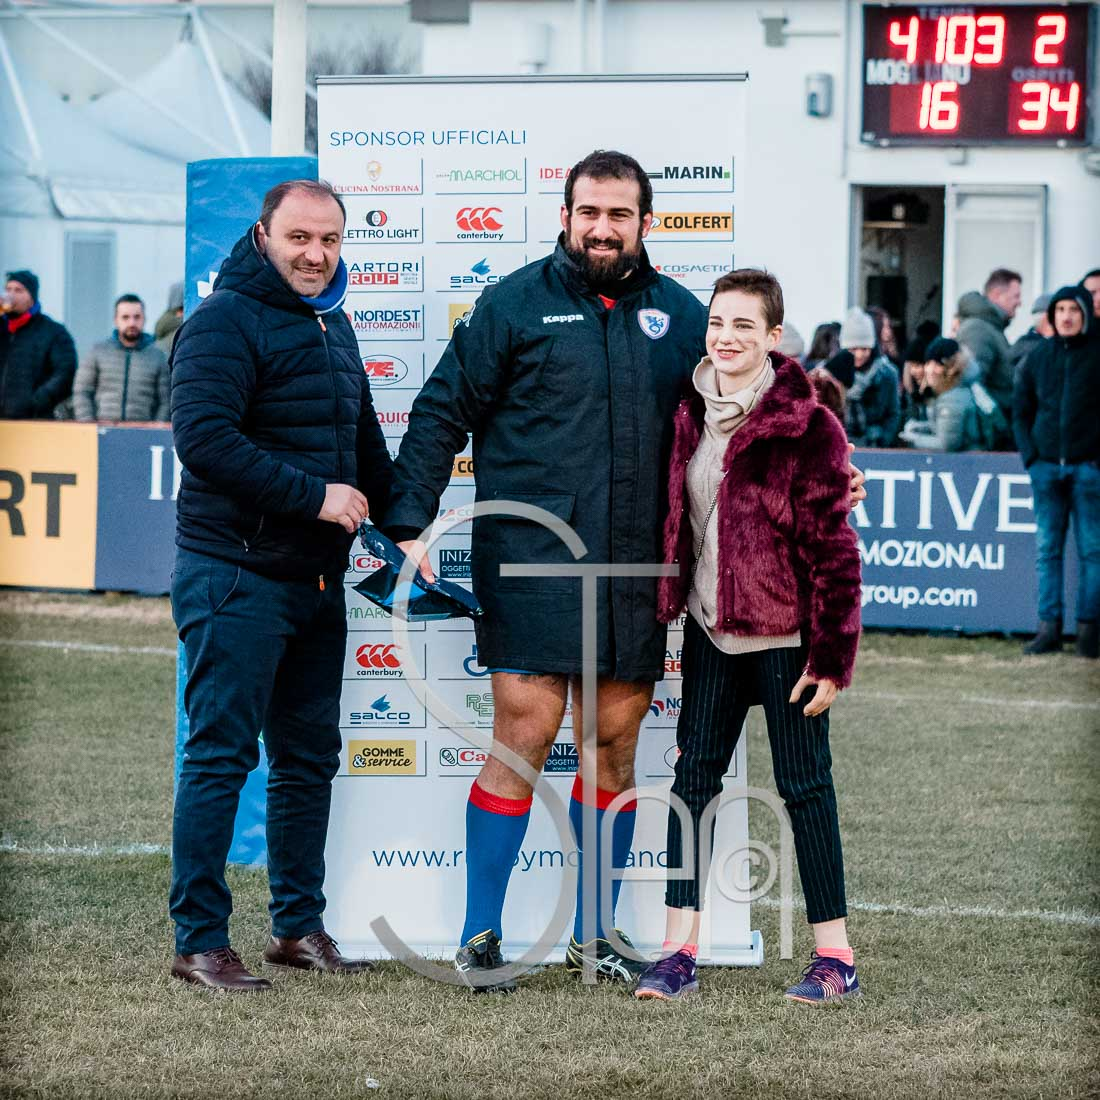 RUGBY MOGLIANO ROVIGO FOLLOWING DAY